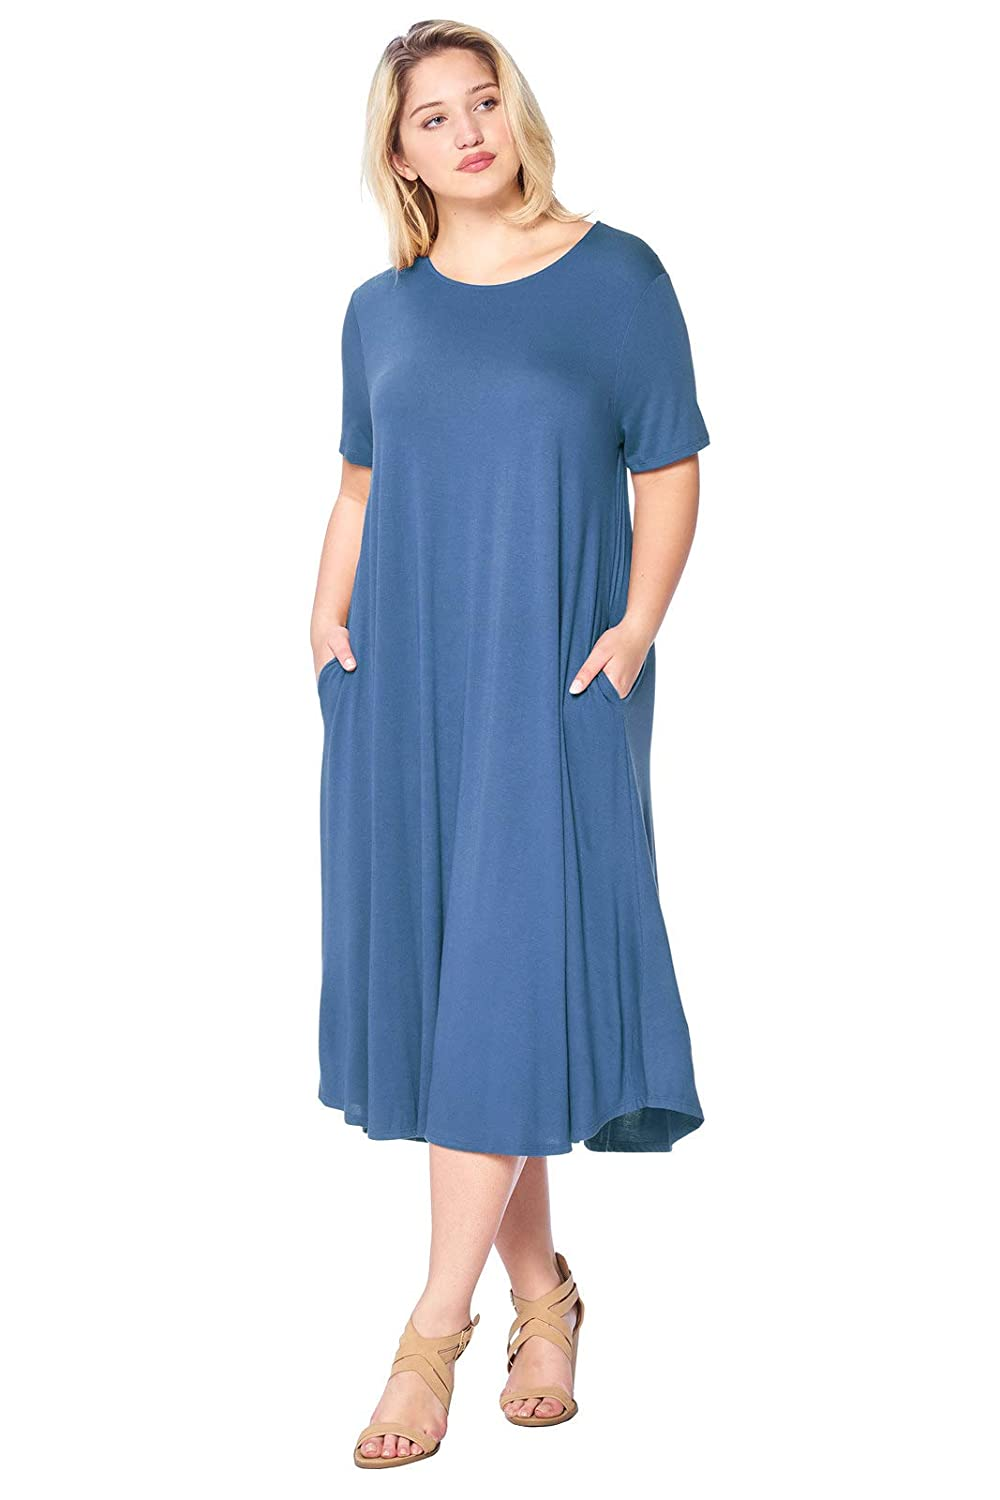 1X-4X Modern Kiwi Womens Plus Size Short Sleeve Flowy A-Line Pocket Midi Maxi Dress